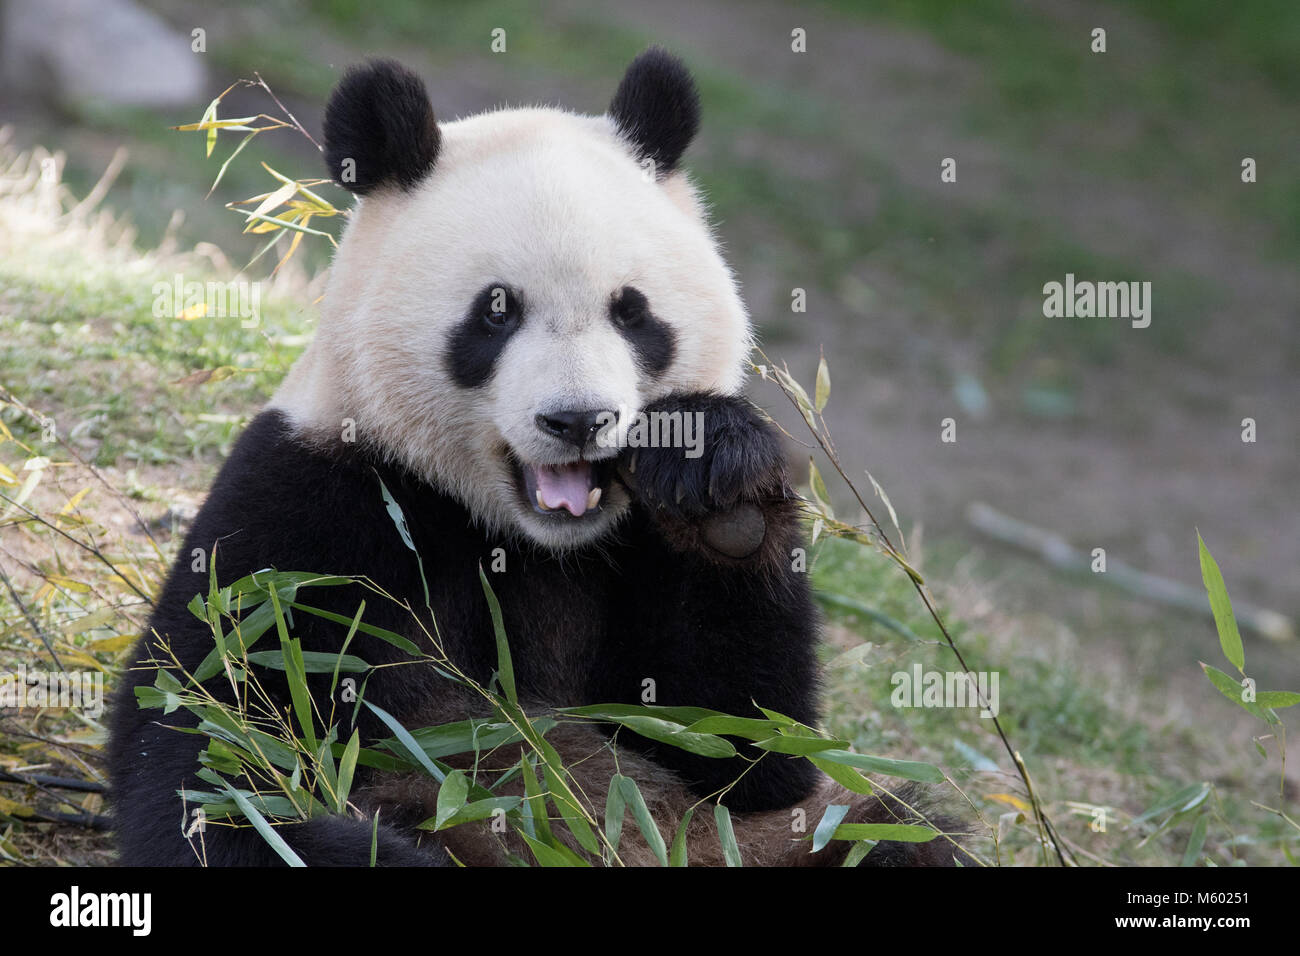 Giant male panda eating bamboo leaves - Stock Image